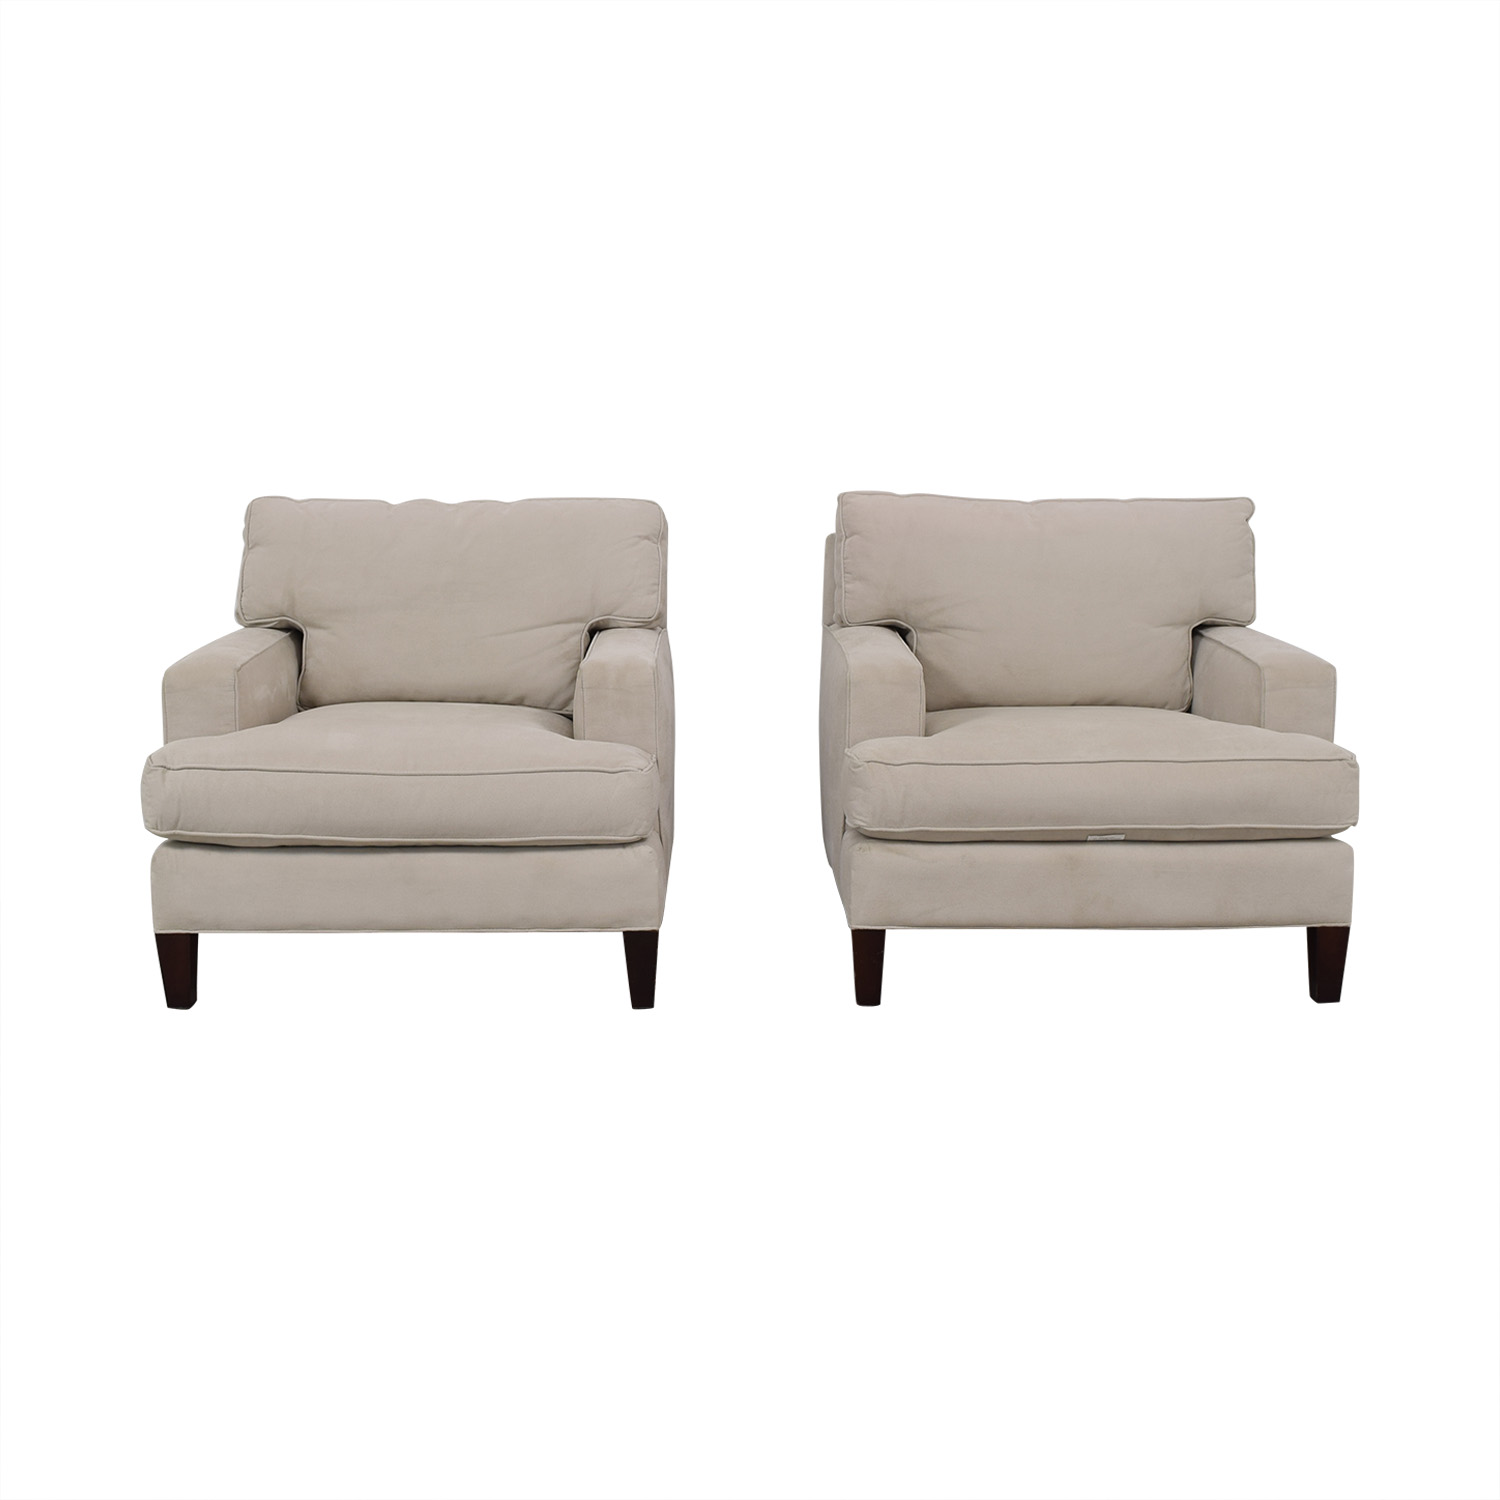 buy Room & Board Room & Board Hawthorne White Accent Chairs online